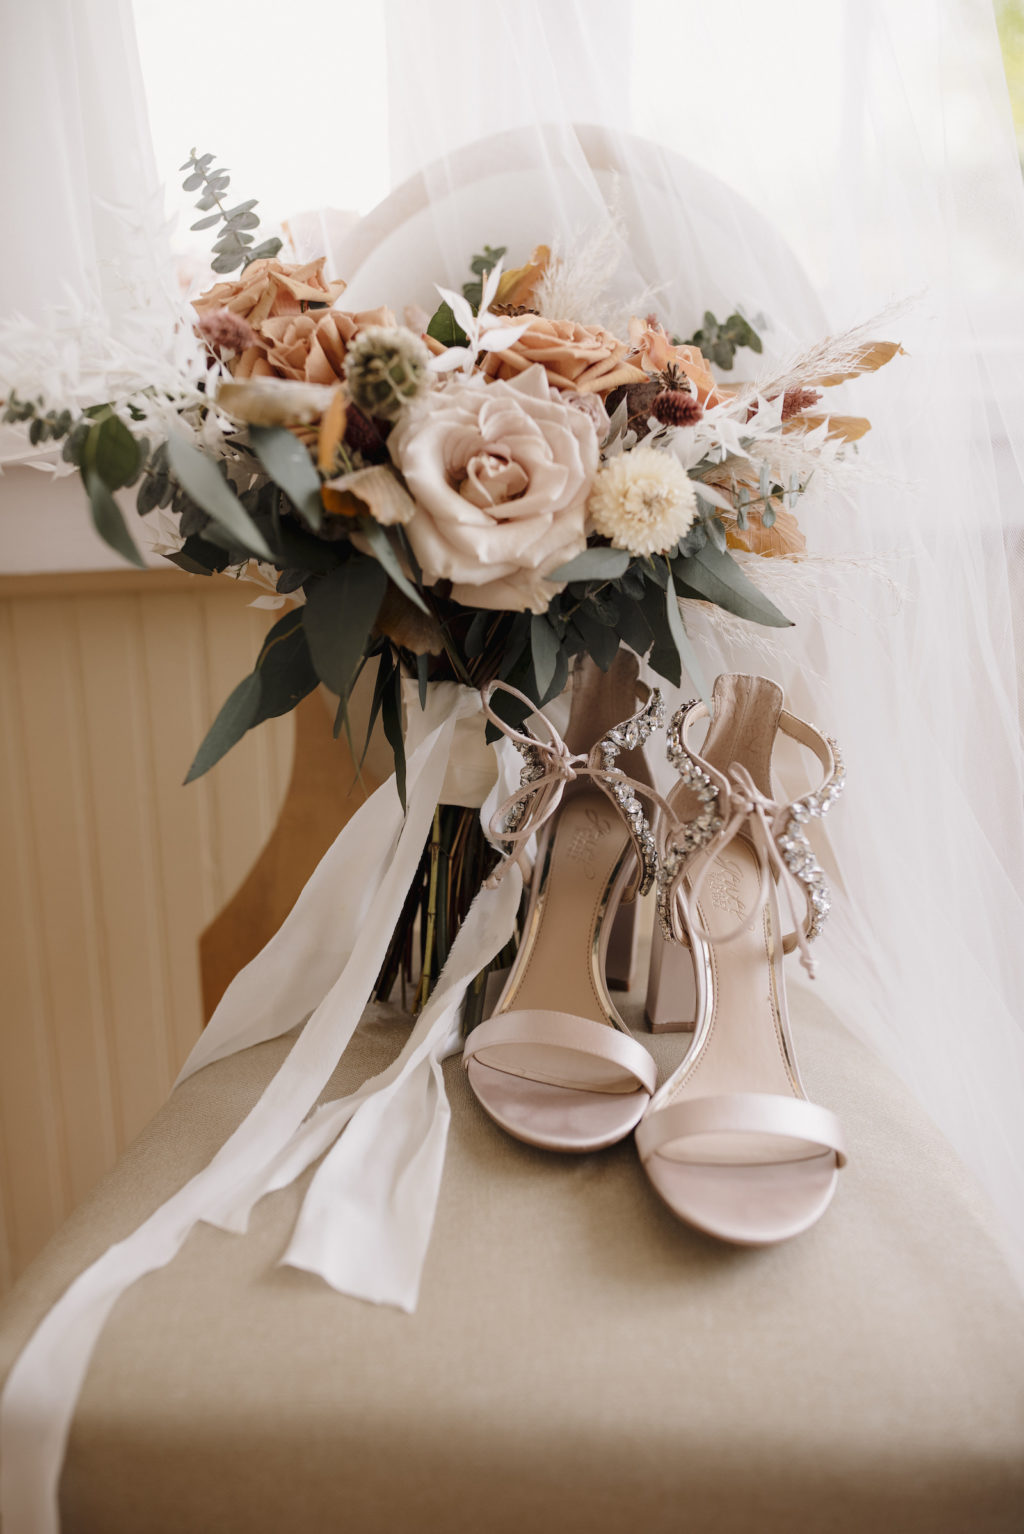 Neutral Beige Roses and Orange Floral Boho Wedding Bouquet with Greenery   Open Toed Wedding Shoes with Laced Up Beading Detail